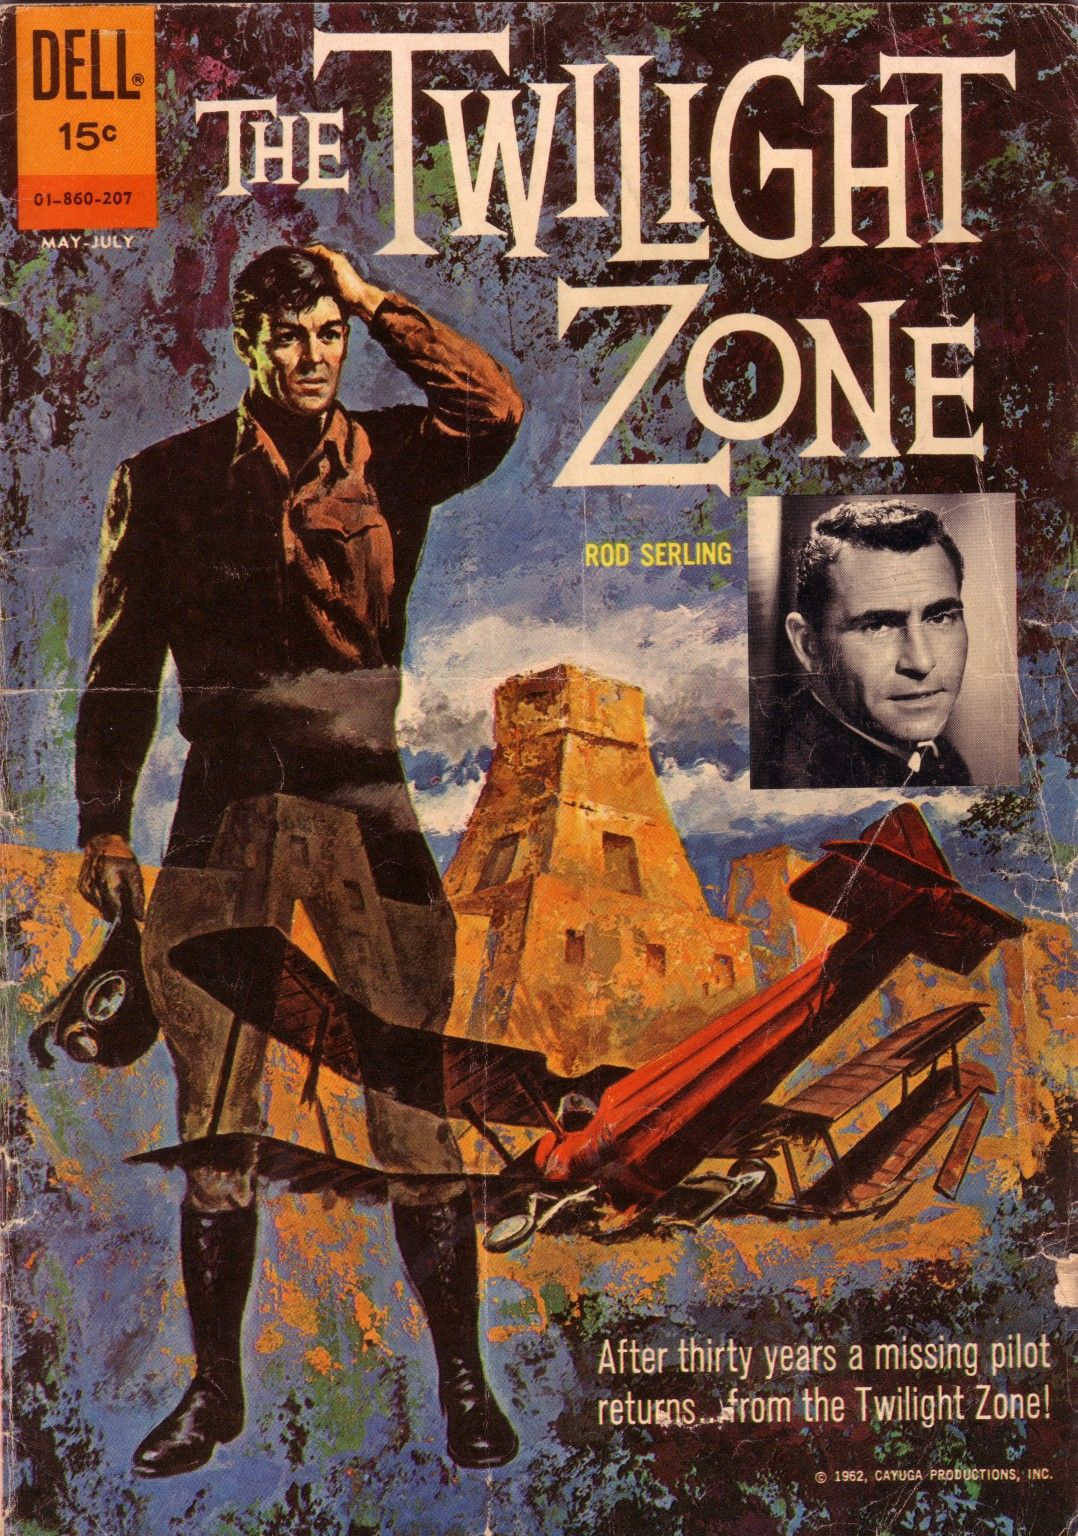 Old Book Cover Zone : Pin by jimmy melendez on dell comics classics pinterest